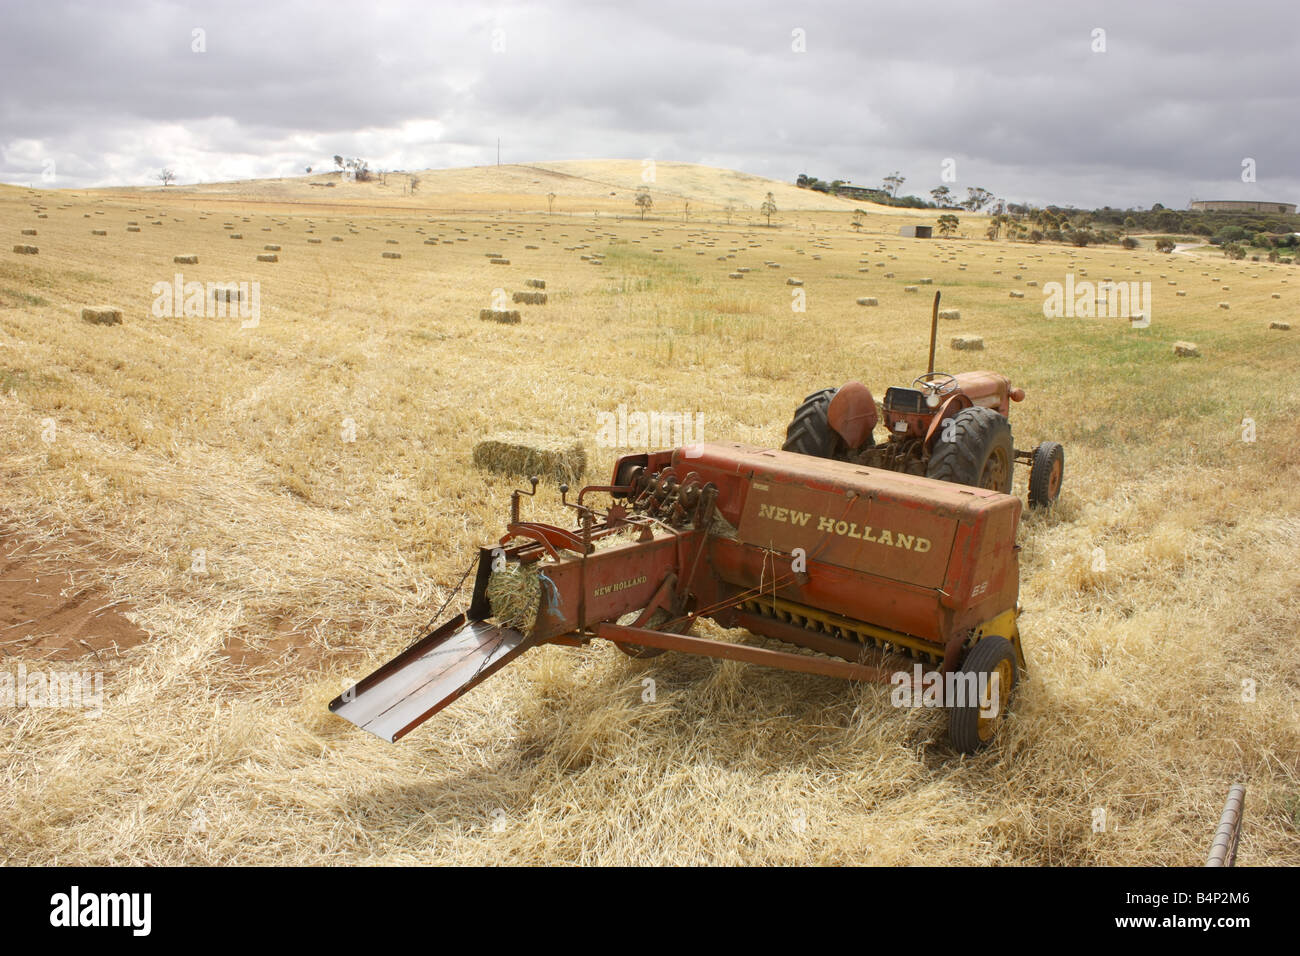 a baler and tractor on the eyre peninsula with dark clouds in background with high resolution photography - Stock Image